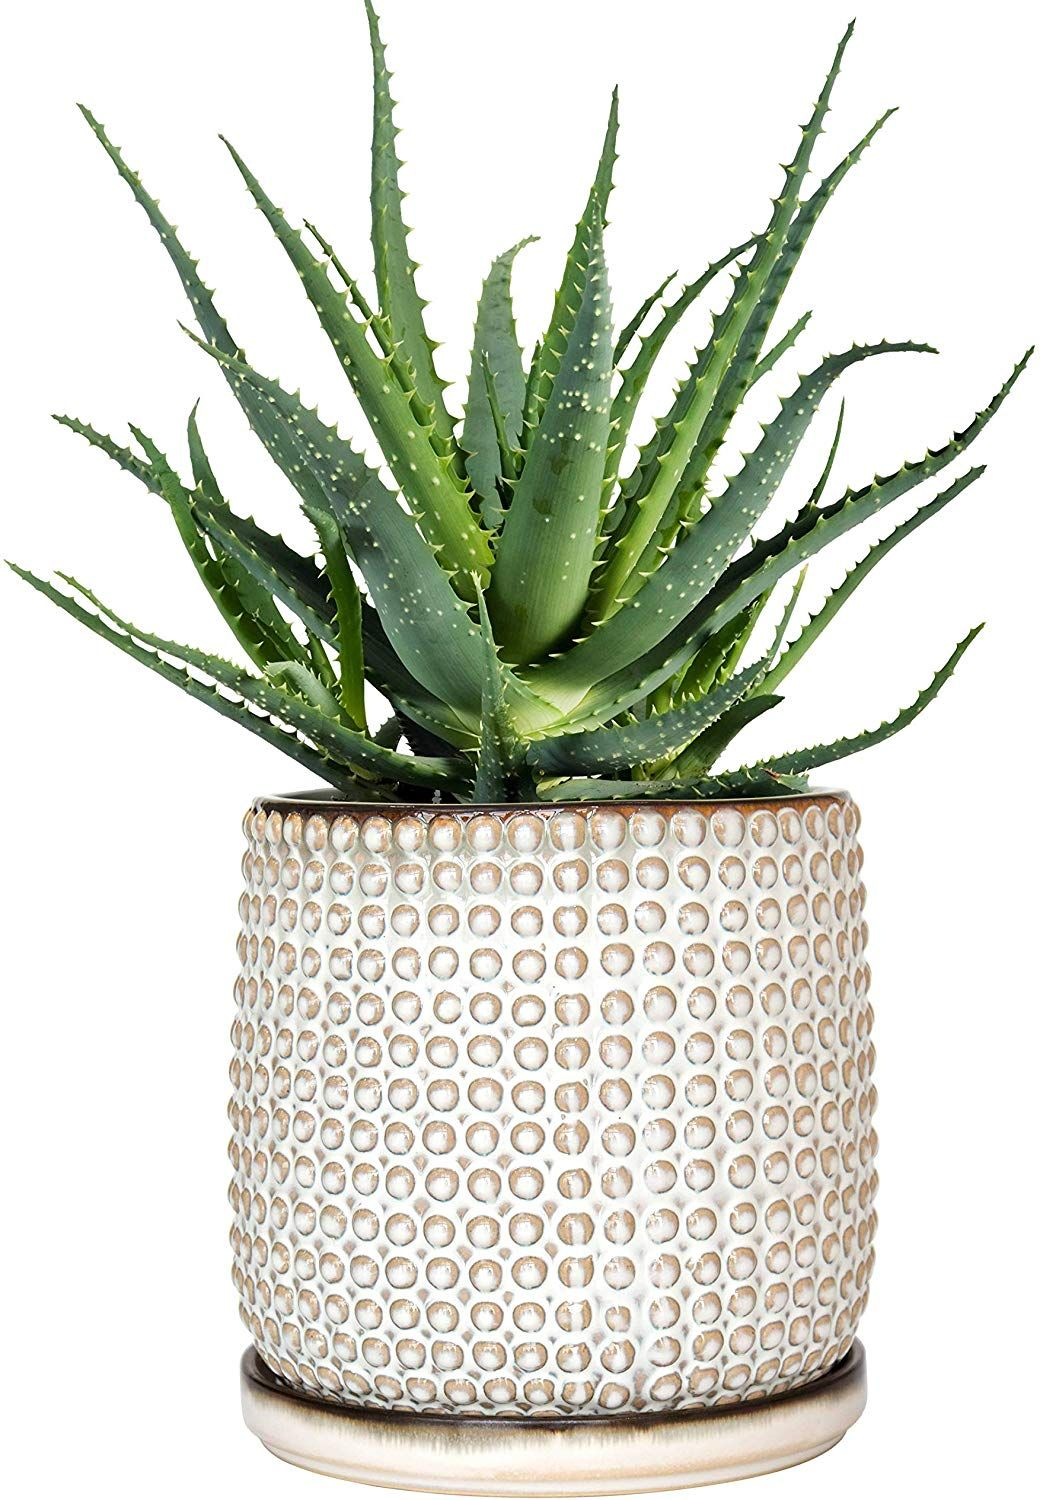 Amazon Com Beaded Stoneware Pot With Drainage Hole And Tray Smoke White Ceramic Plant Pot 6 Inch Round In 2020 Ceramic Plant Pots Ceramic Flower Pots Stoneware Pot